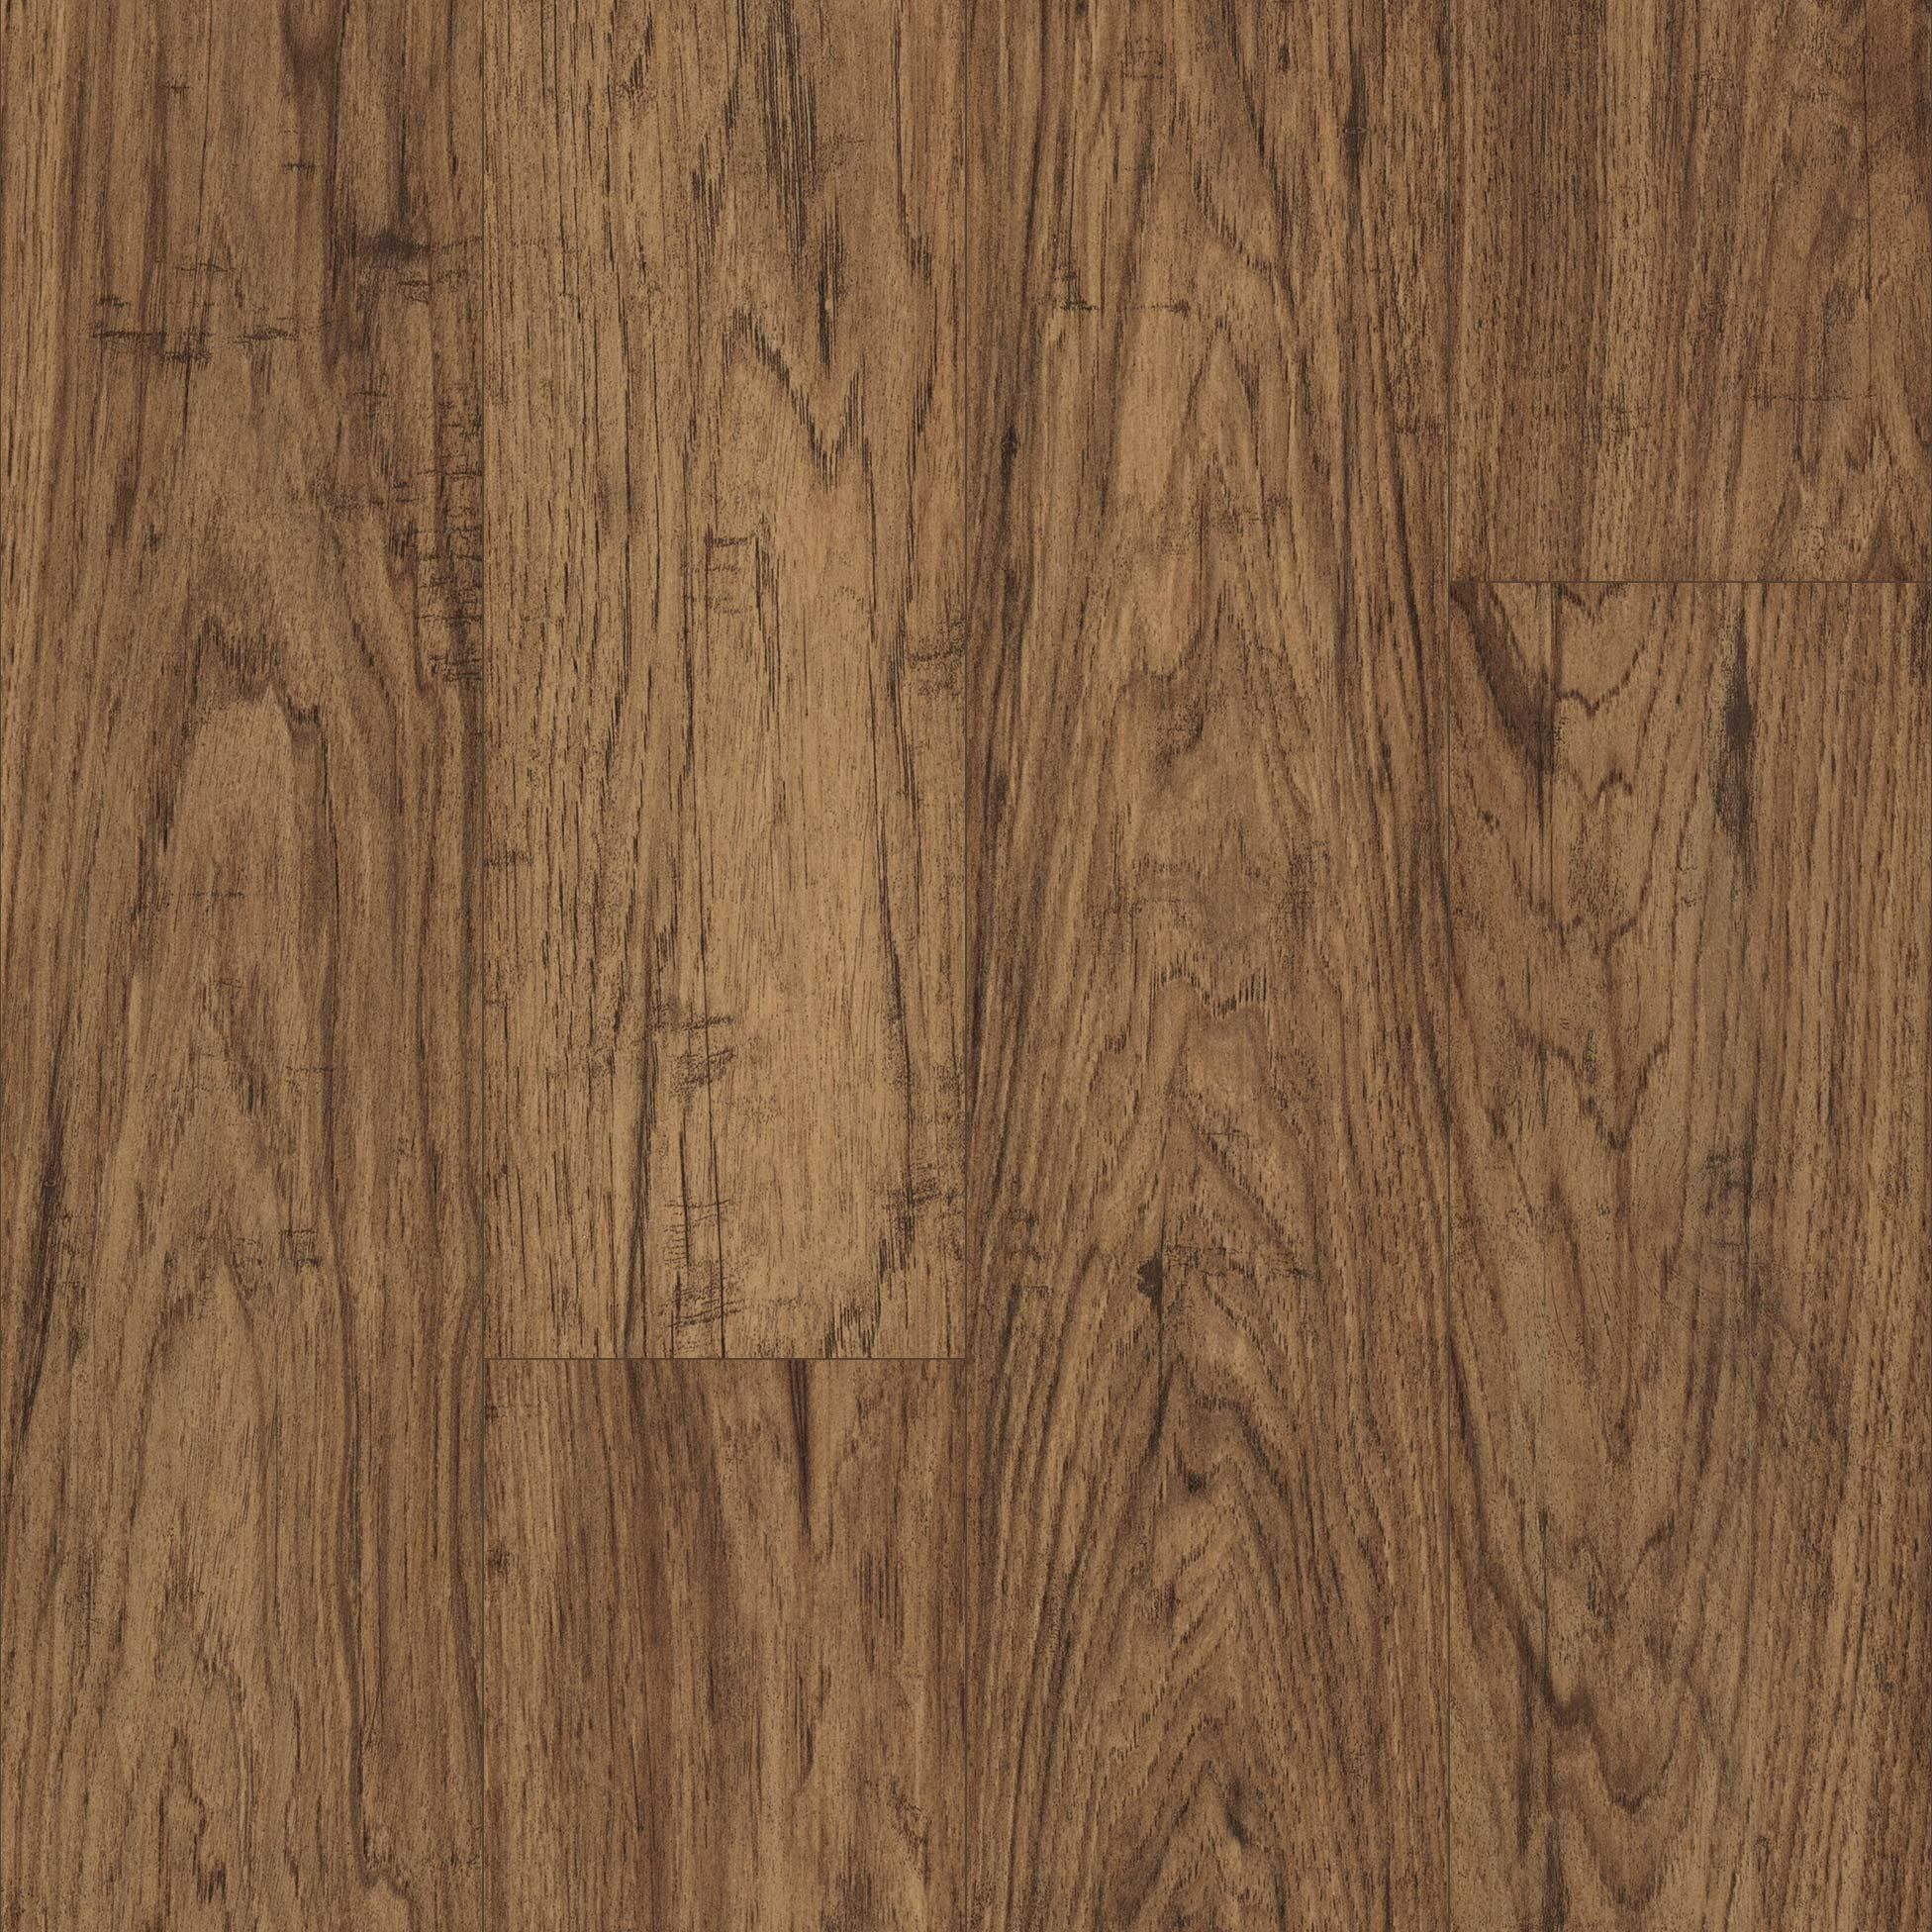 Torlys Ginger Root Hickory 5 Wide 8mm Laminate Flooring With Free